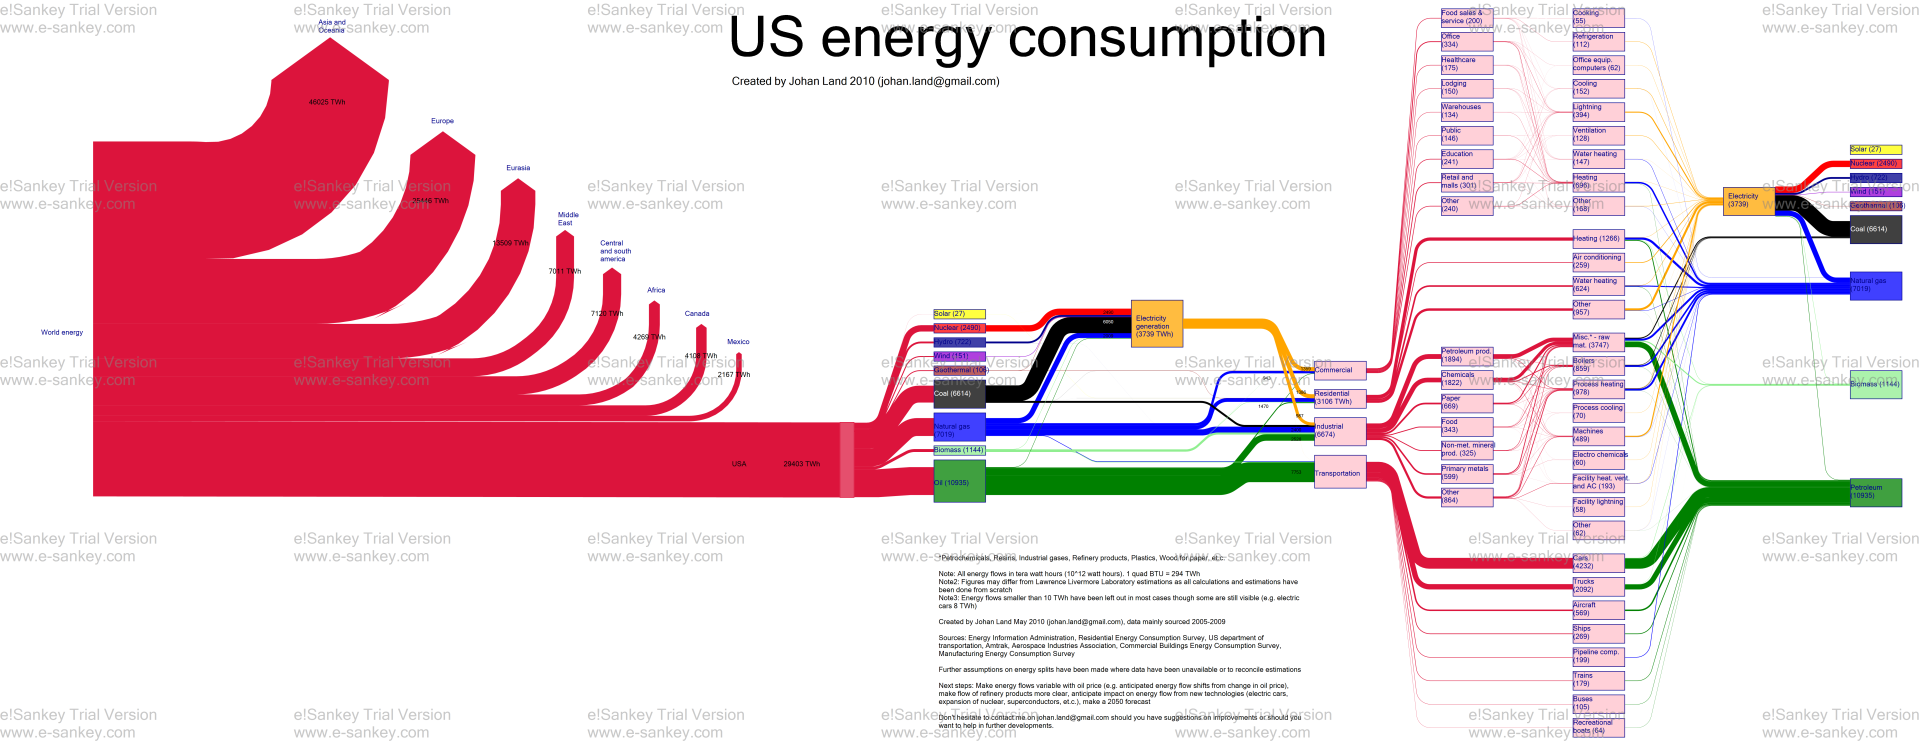 Extended llnl sankey diagram sankey diagrams johan land us energy consumption sankey diagram resized ccuart Images